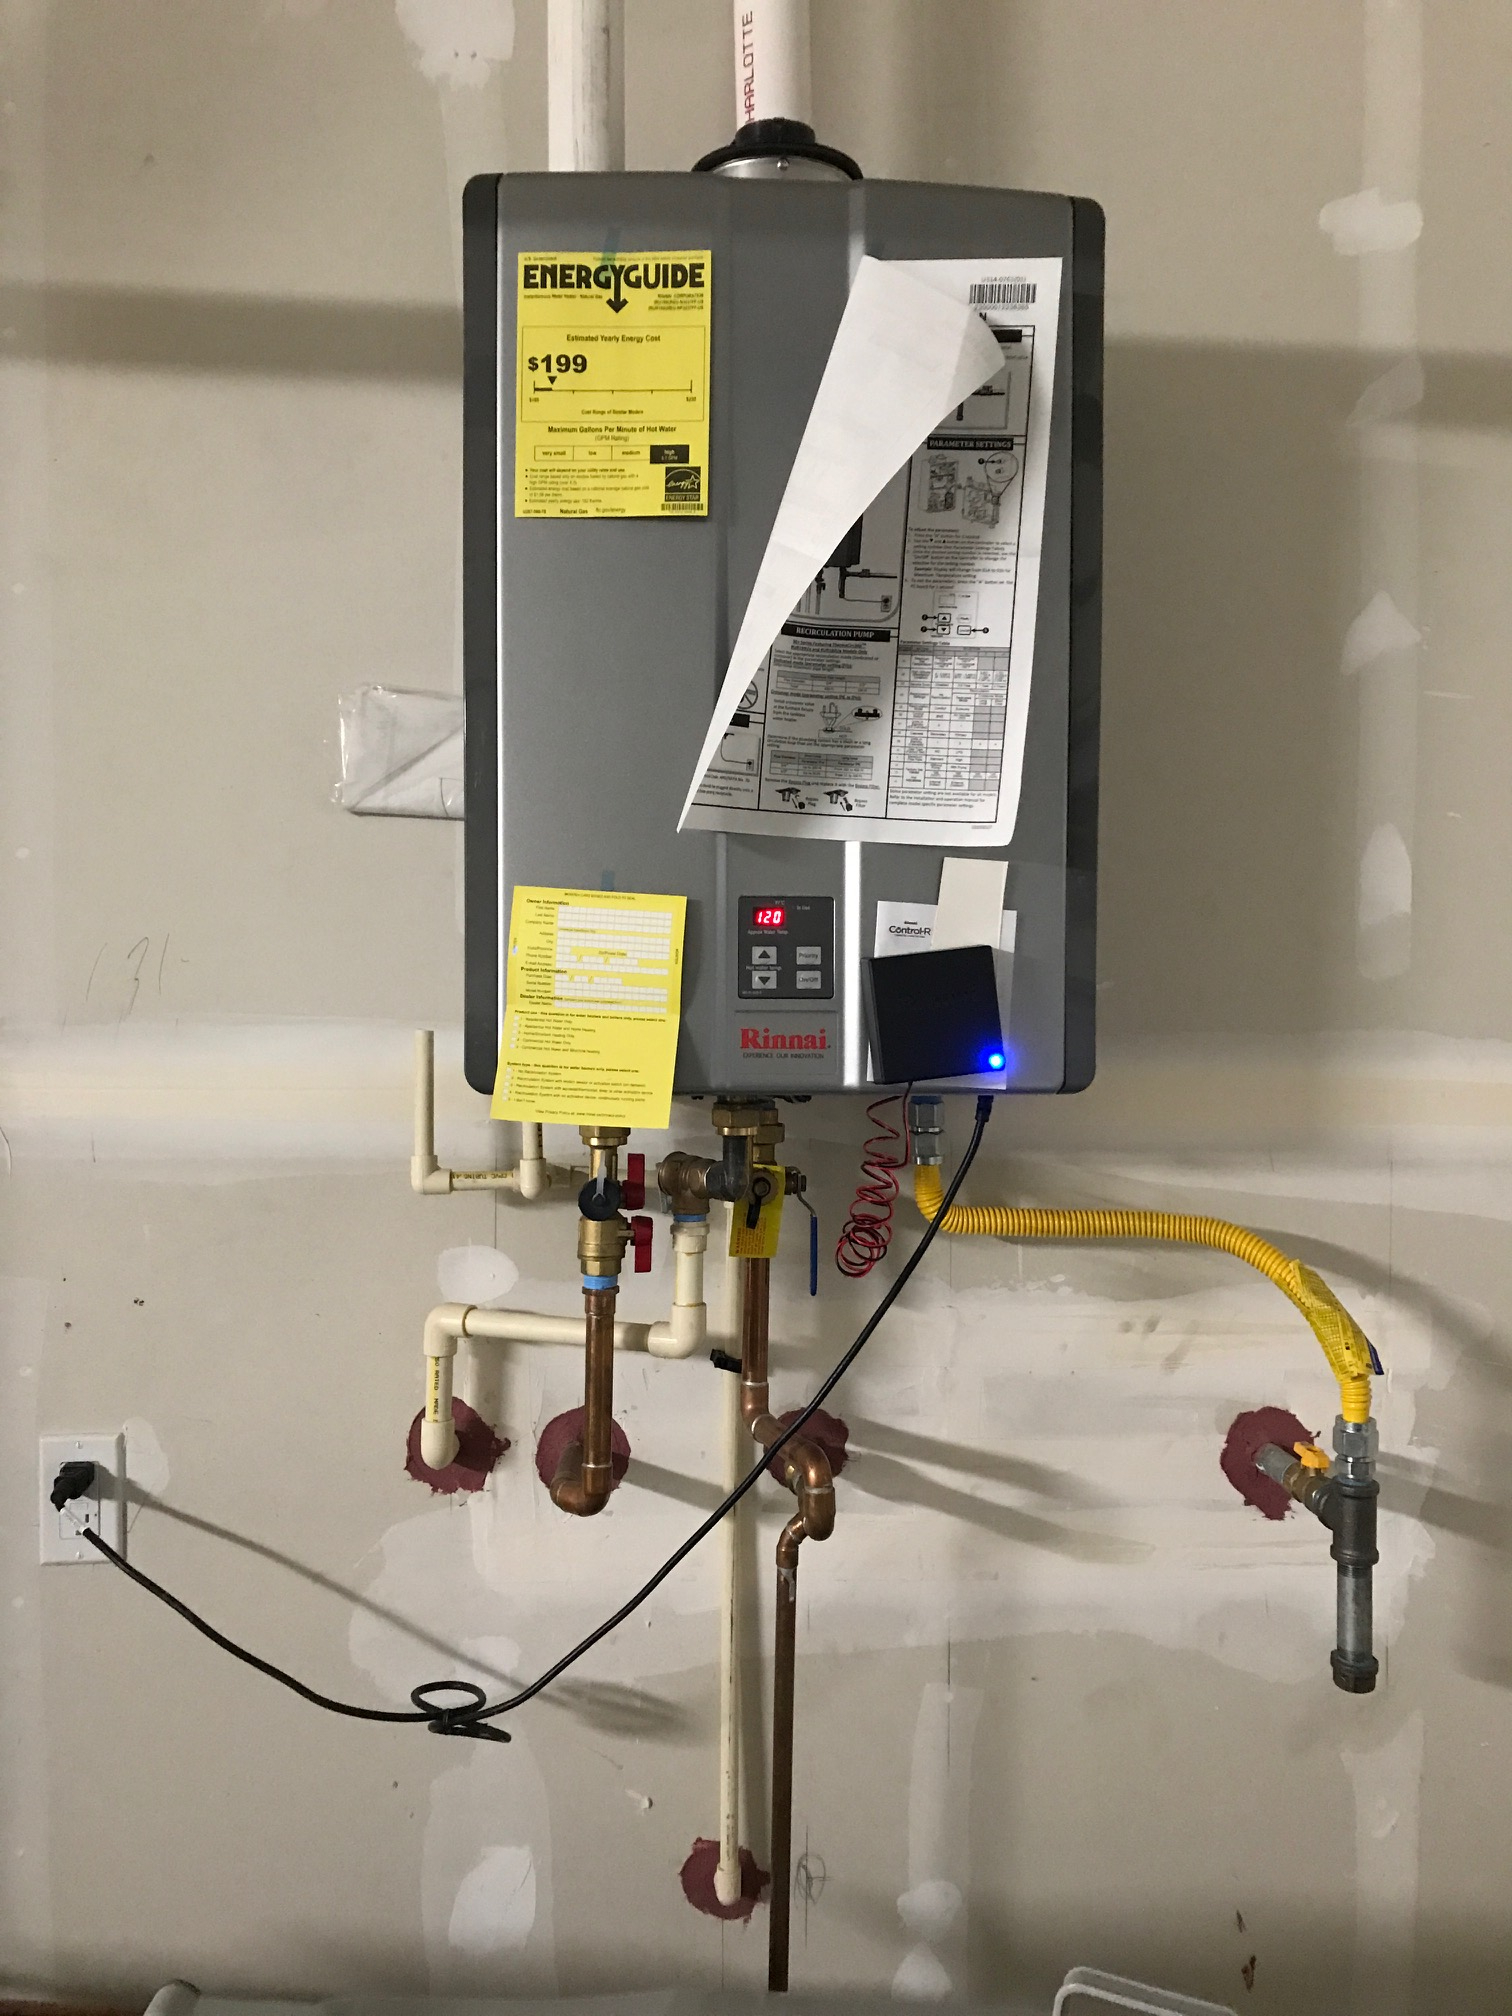 Rinnai Tankless Water Heater Not Providing Hot Water